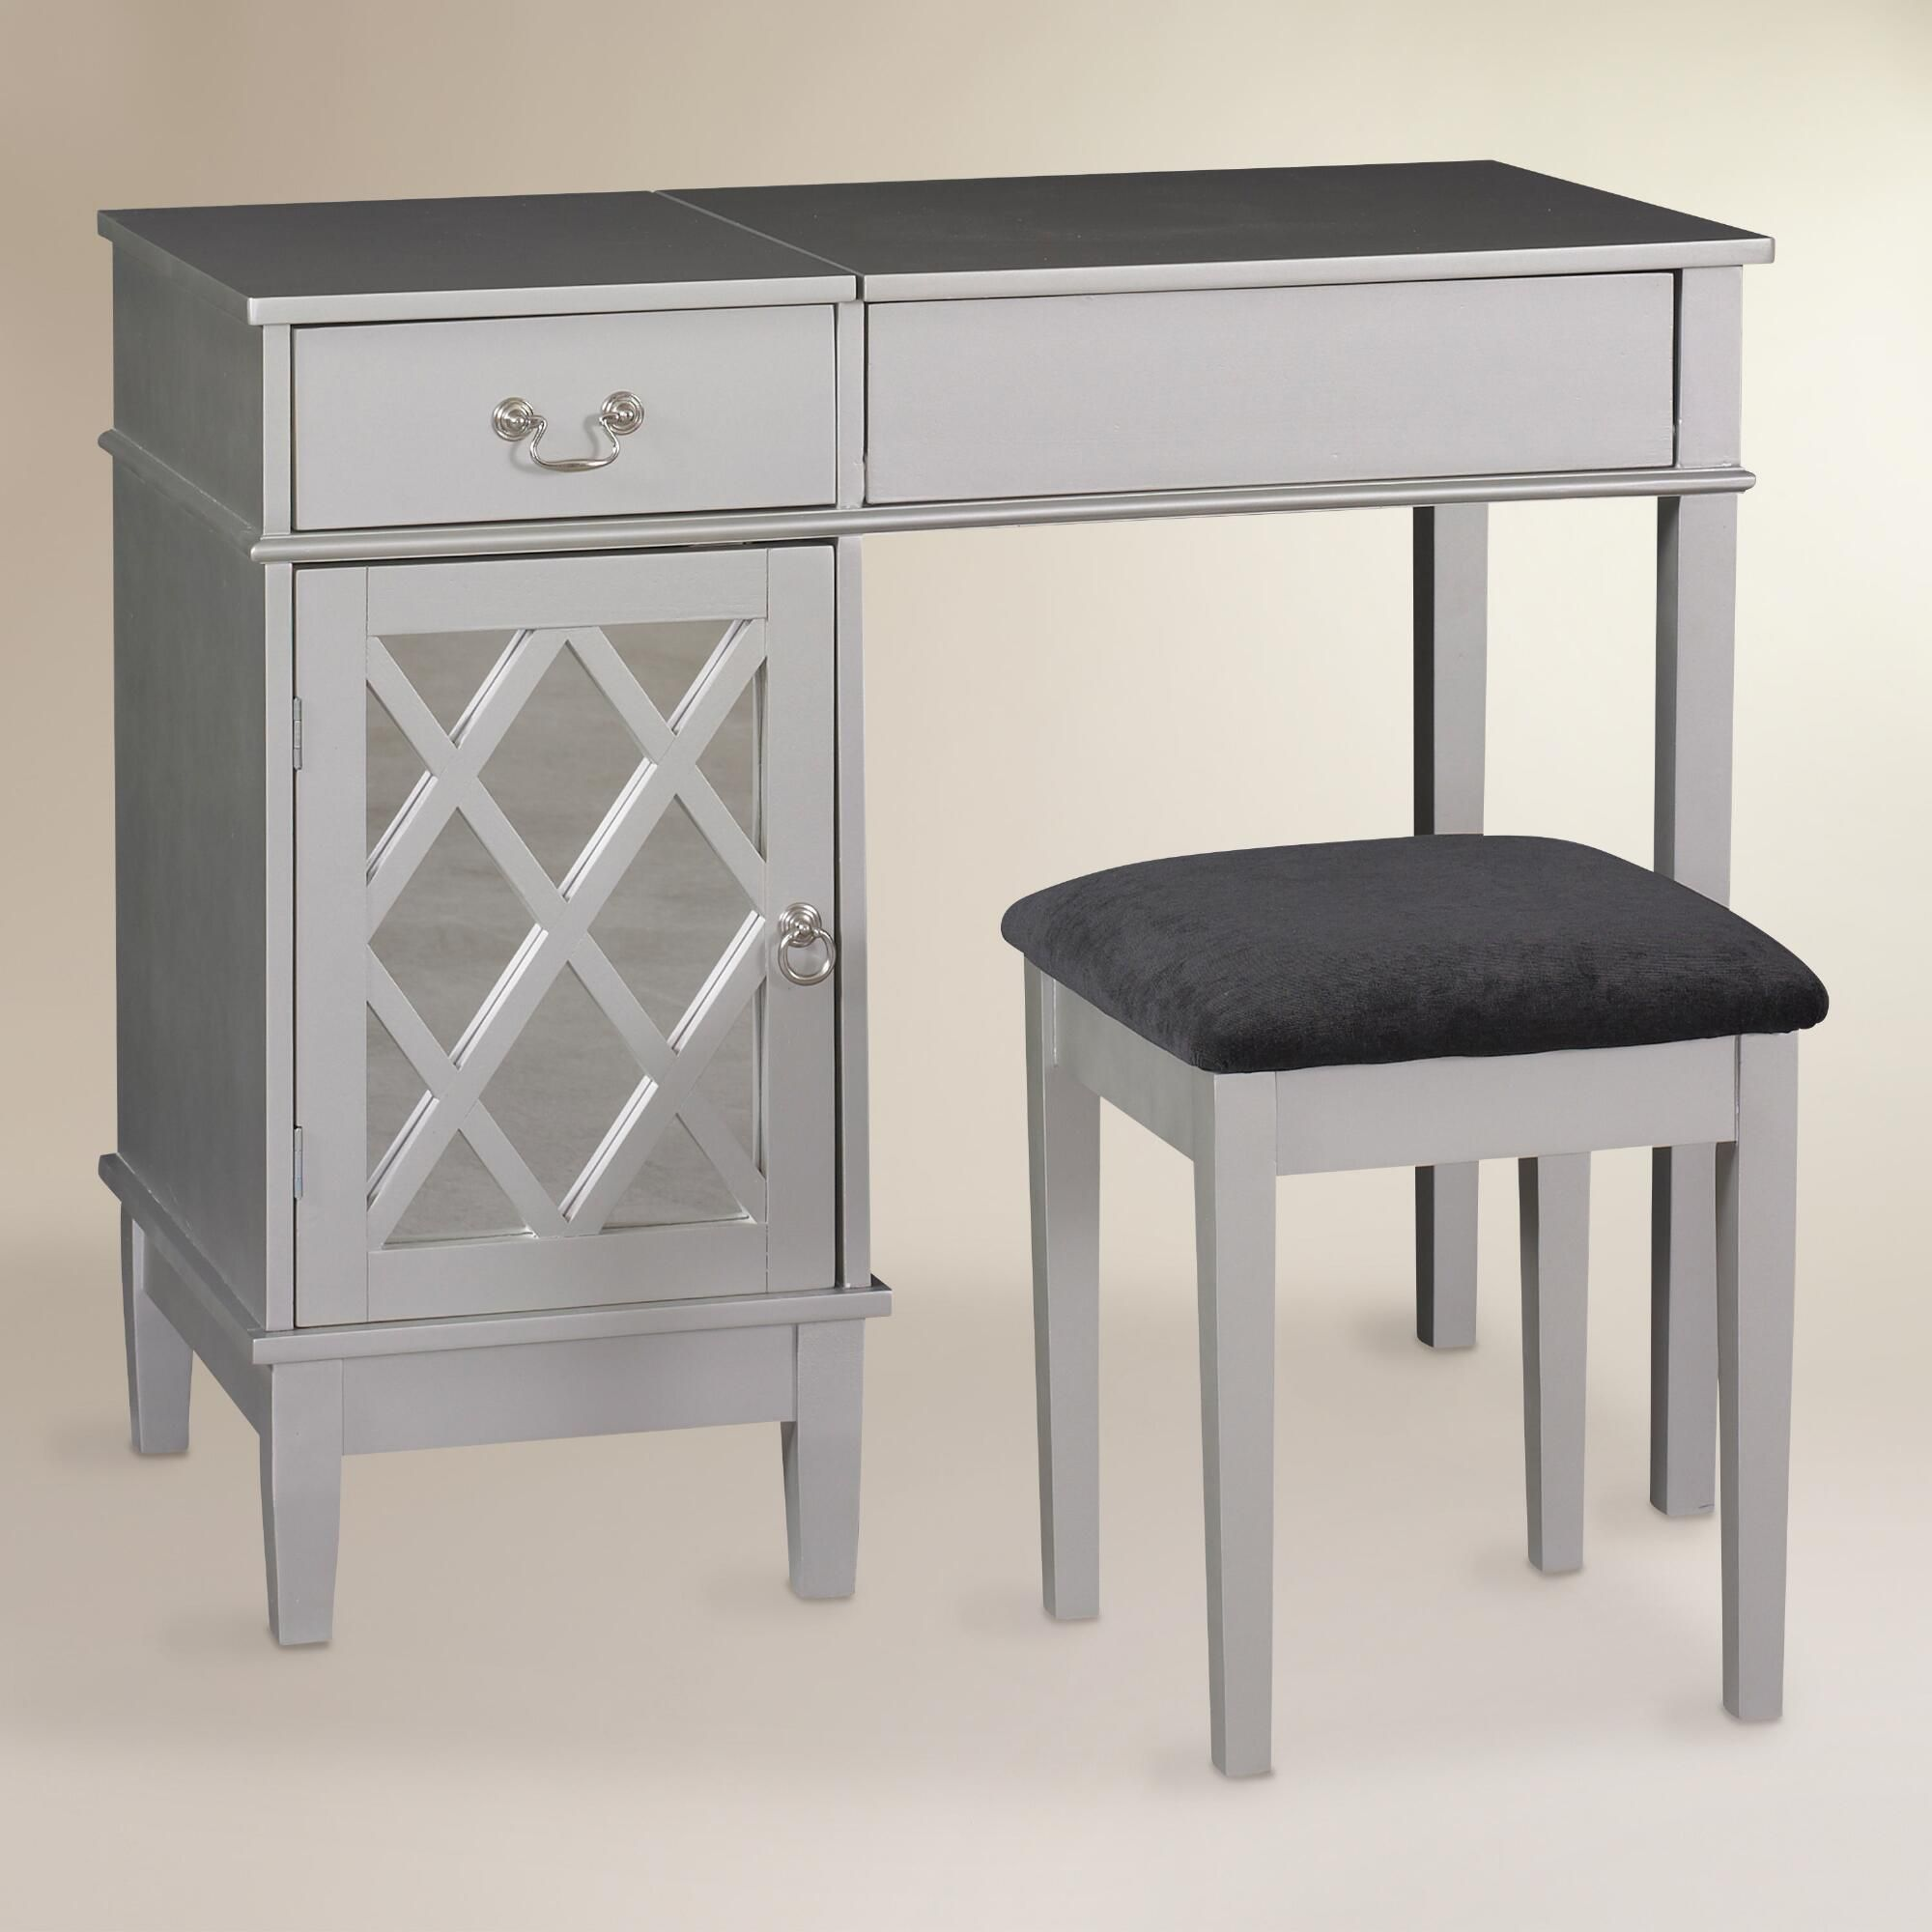 Modern dressing table mirrors silver wood arlene vanity set  dressing tables vanities and dressings